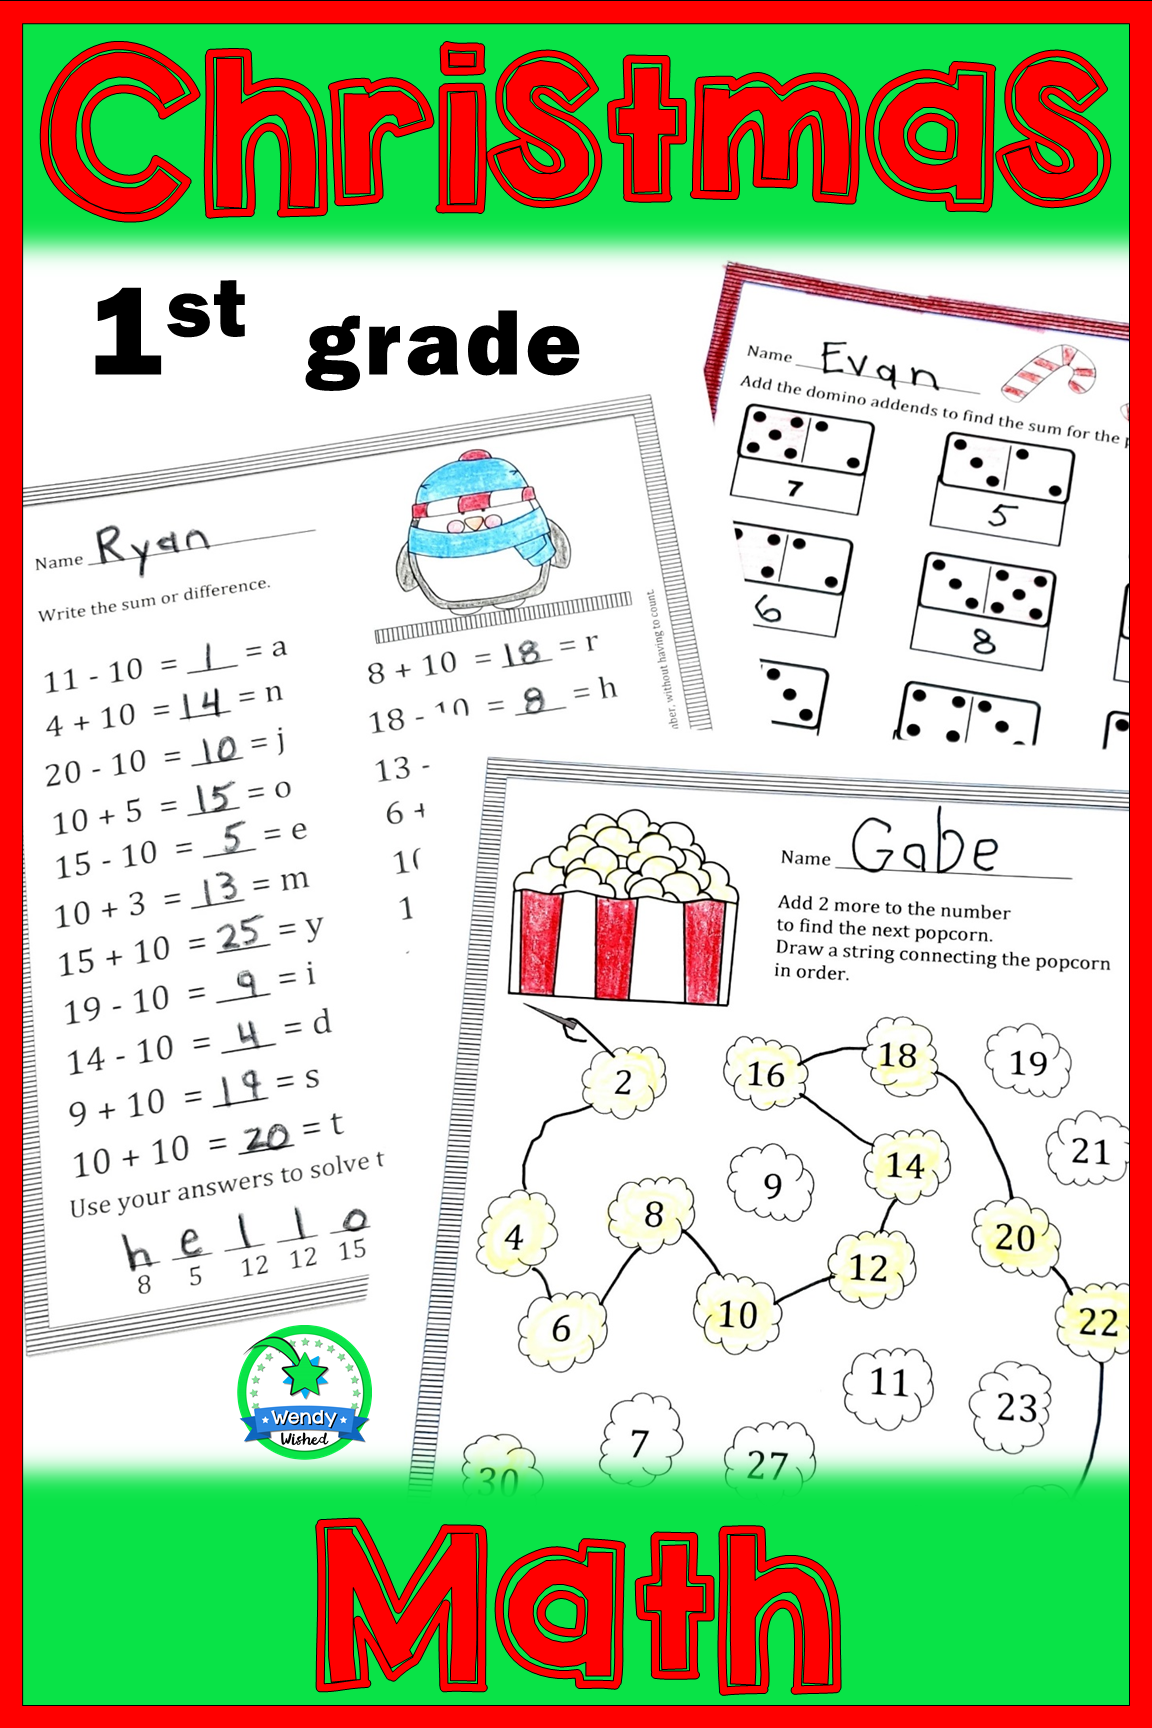 small resolution of Christmas Math Worksheets for 1st grade   Christmas math worksheets